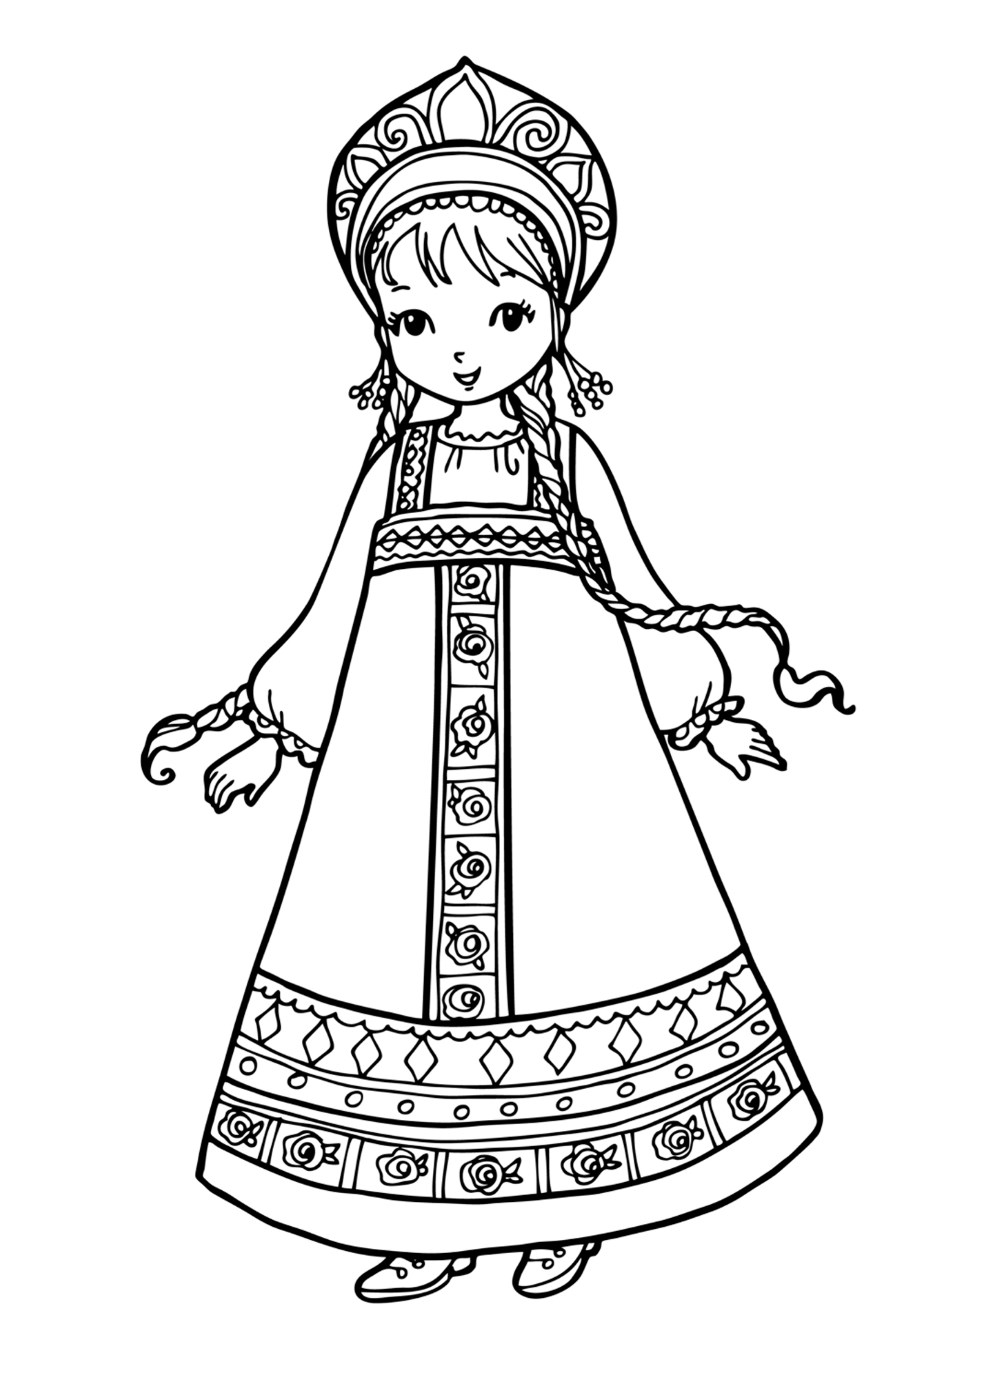 russian folk art coloring pages - photo#31